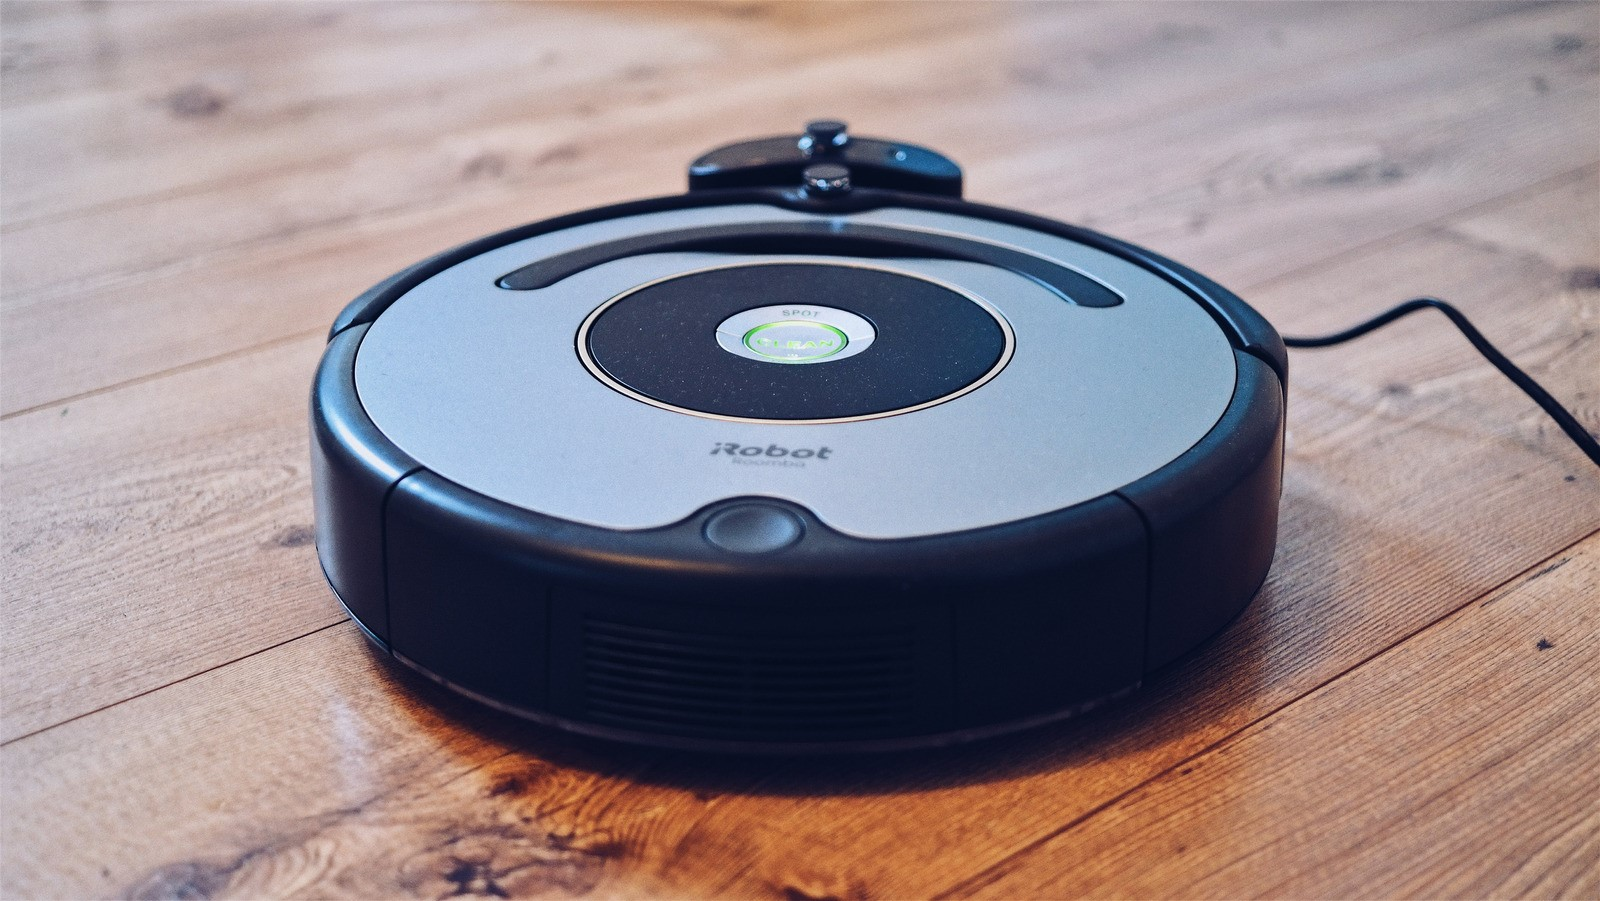 6 of The Best Cheap Robot Vacuums - Updated 2020